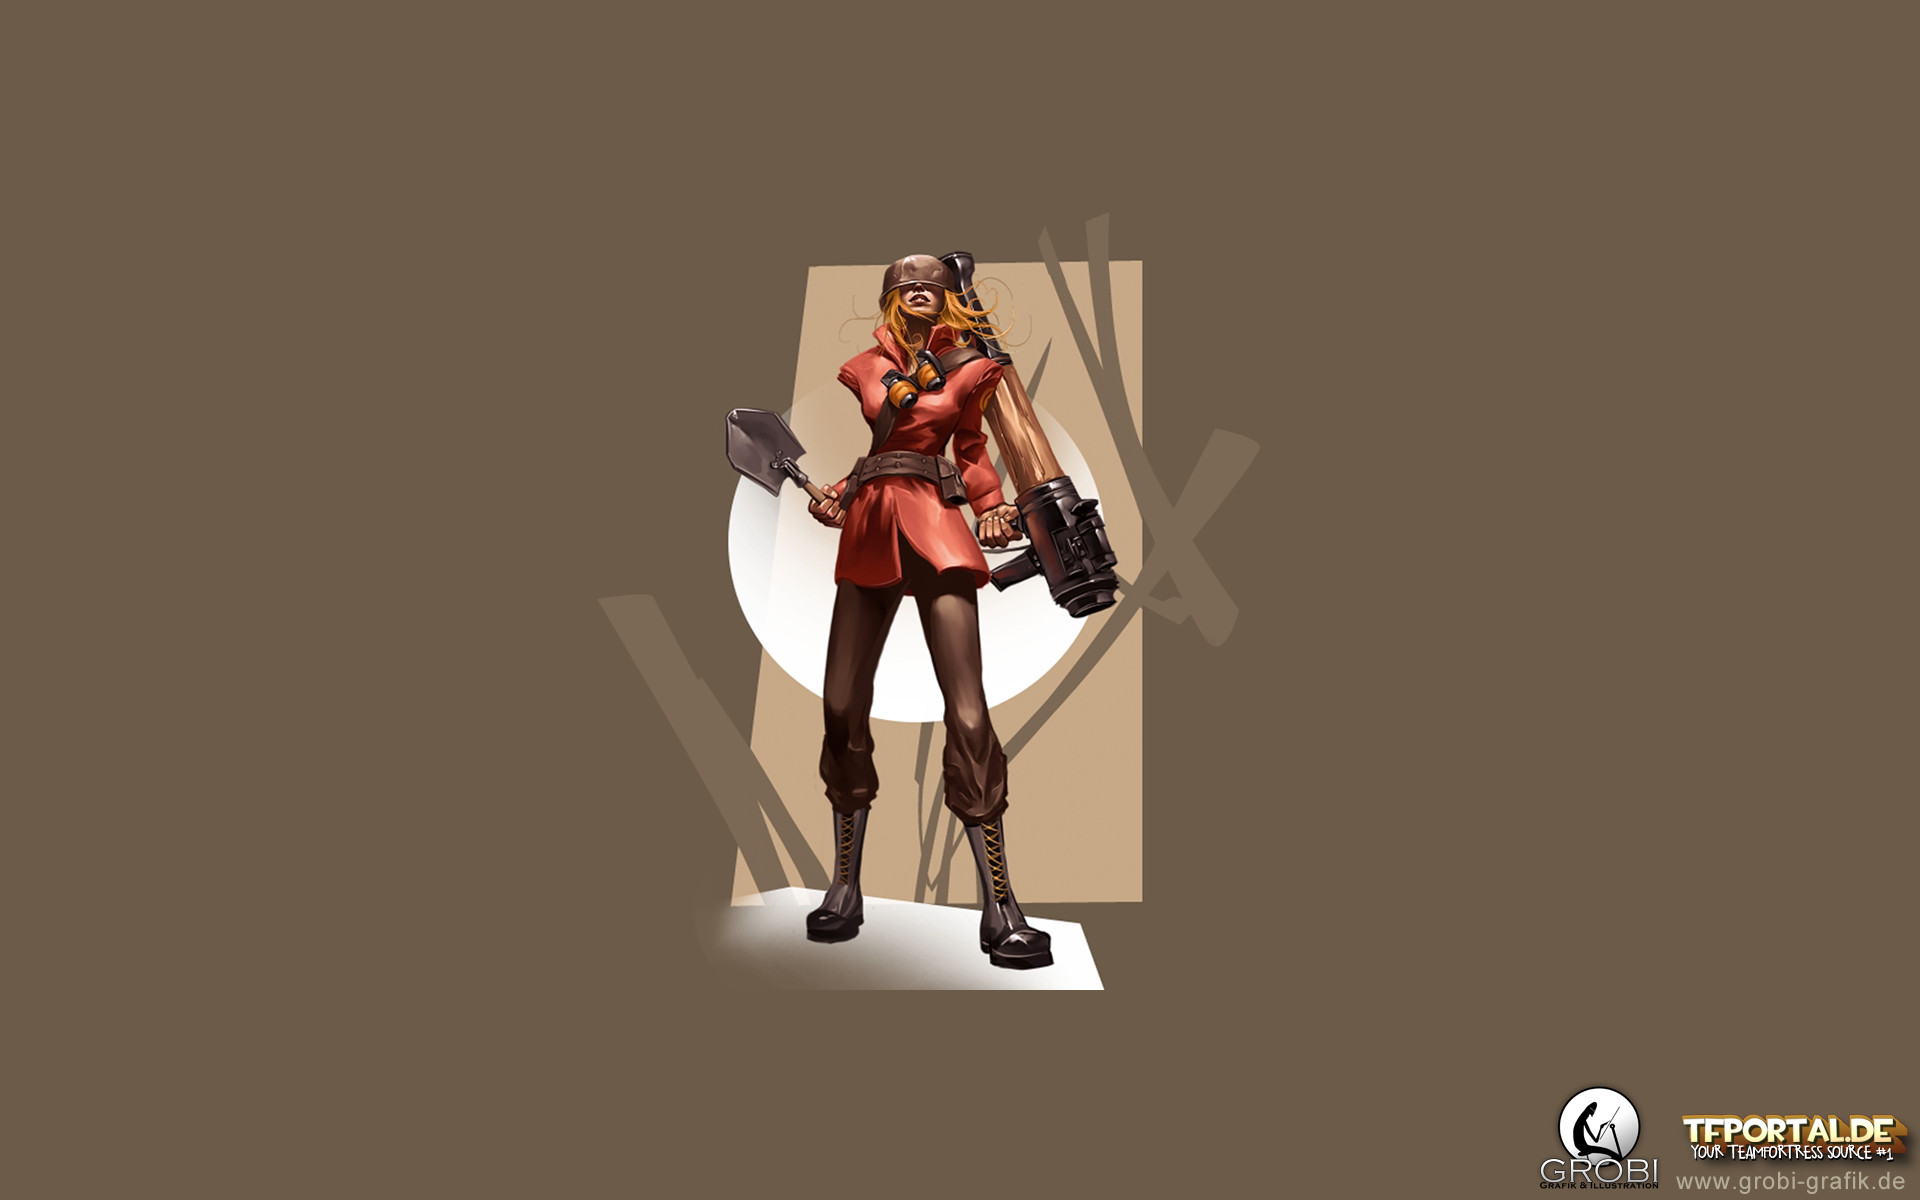 1920x1200 TF2 Girl Soldier Wallpaper. 1920x1080